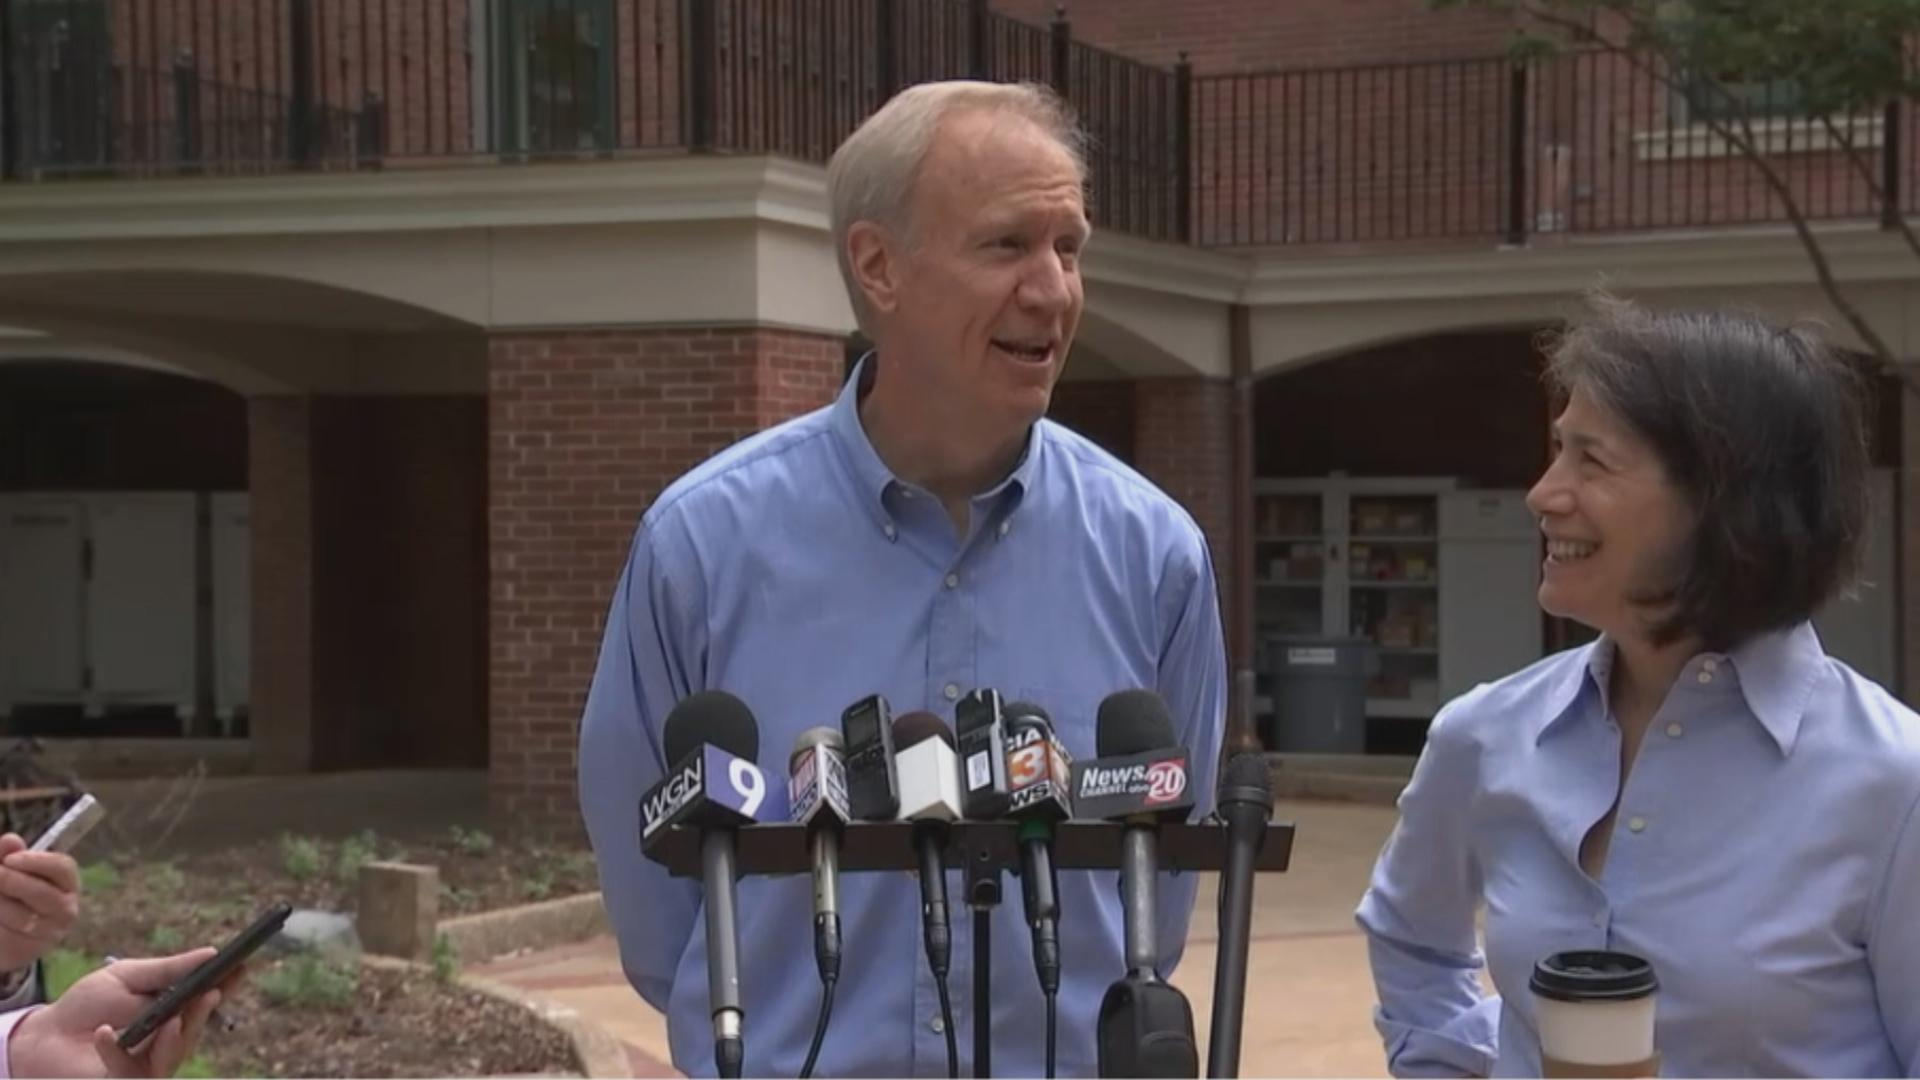 Gov. Bruce Rauner and his wife, Diana Rauner, during a press conference outside the Illinois Governor's Mansion. (Chicago Tonight file photo)